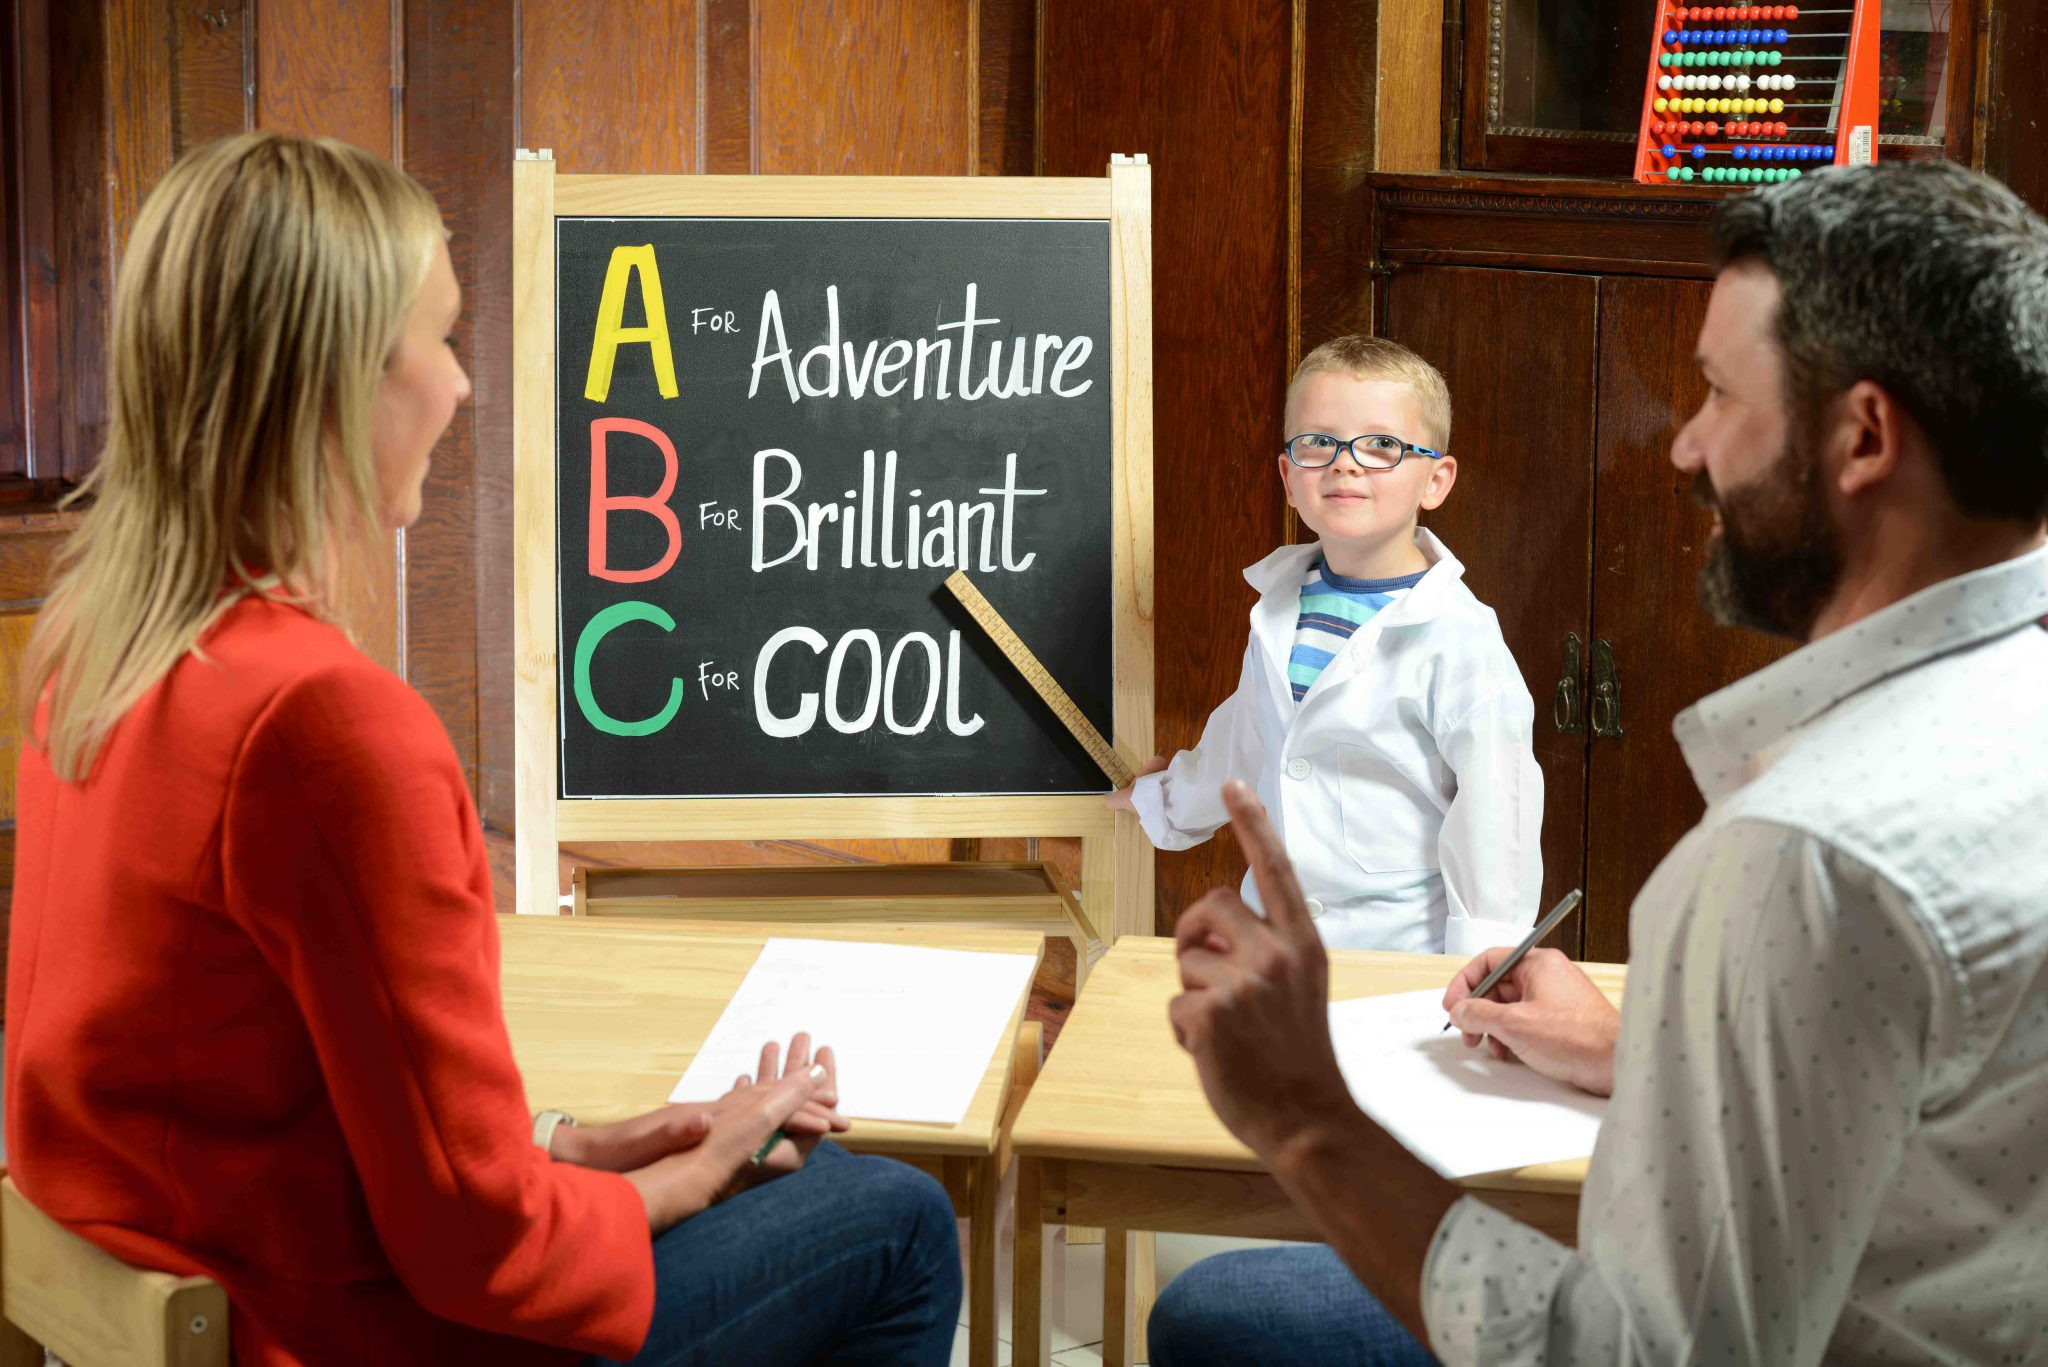 "EASY AS A, B, C - Little Ben O'Neill (4) gets ready for his summer adventure by 'educating' his parents on what makes a journey by car fun for kids.  Leading ferry company Stena Line has children's entertainers during the summer, dedicated games rooms and play areas as well as free Wi-Fi, free movies and great eateries to make a ferry trip a dream, but, they are also keen to make travel to their ports as pleasurable as possible.  So they have come up with useful tips and ideas to turn up the holiday fun factor during the car journey including games such as Name That Tune and Eye Eye Captain!   Orla Noonan, Head of Travel, Irish Sea, Stena Line, said: ""Adults, we know you've done your bit to prepare for your holiday with the kids so, if you are travelling by ferry, it's time to let us do ours!  Not only do Kids Go Free all year with Stena Line but there is so much going on onboard that you get a break from being the entertainer.  In fact, there is so much for the kids to do that they won't want to leave!""  The leading ferry company's generous offer means that all kids go free, so get online and get booking now as this incredible deal won't last forever.  Book by clicking on www.stenaline.co.uk/kids"